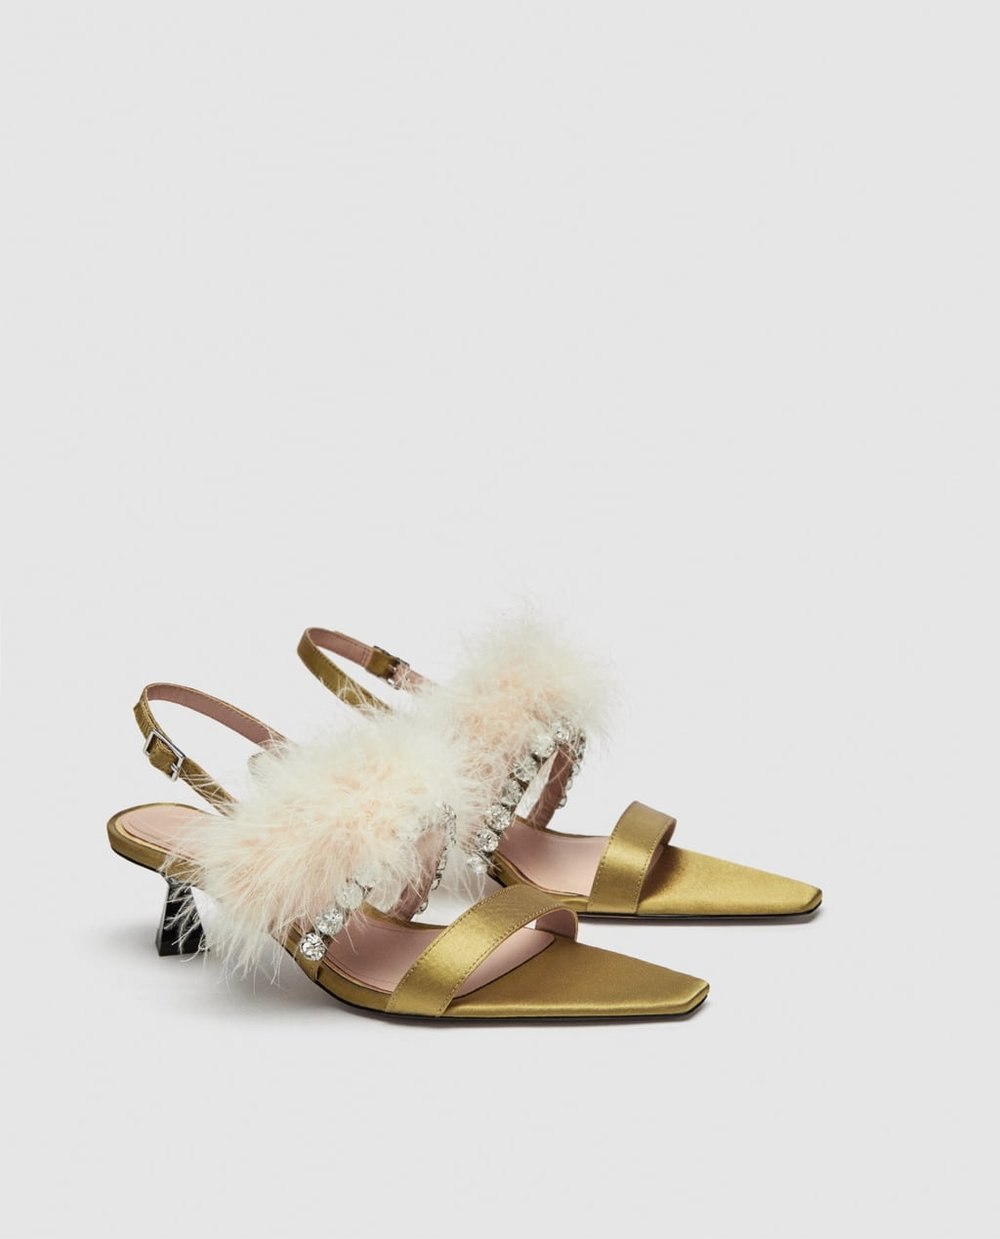 Zara_feather sandals.jpg